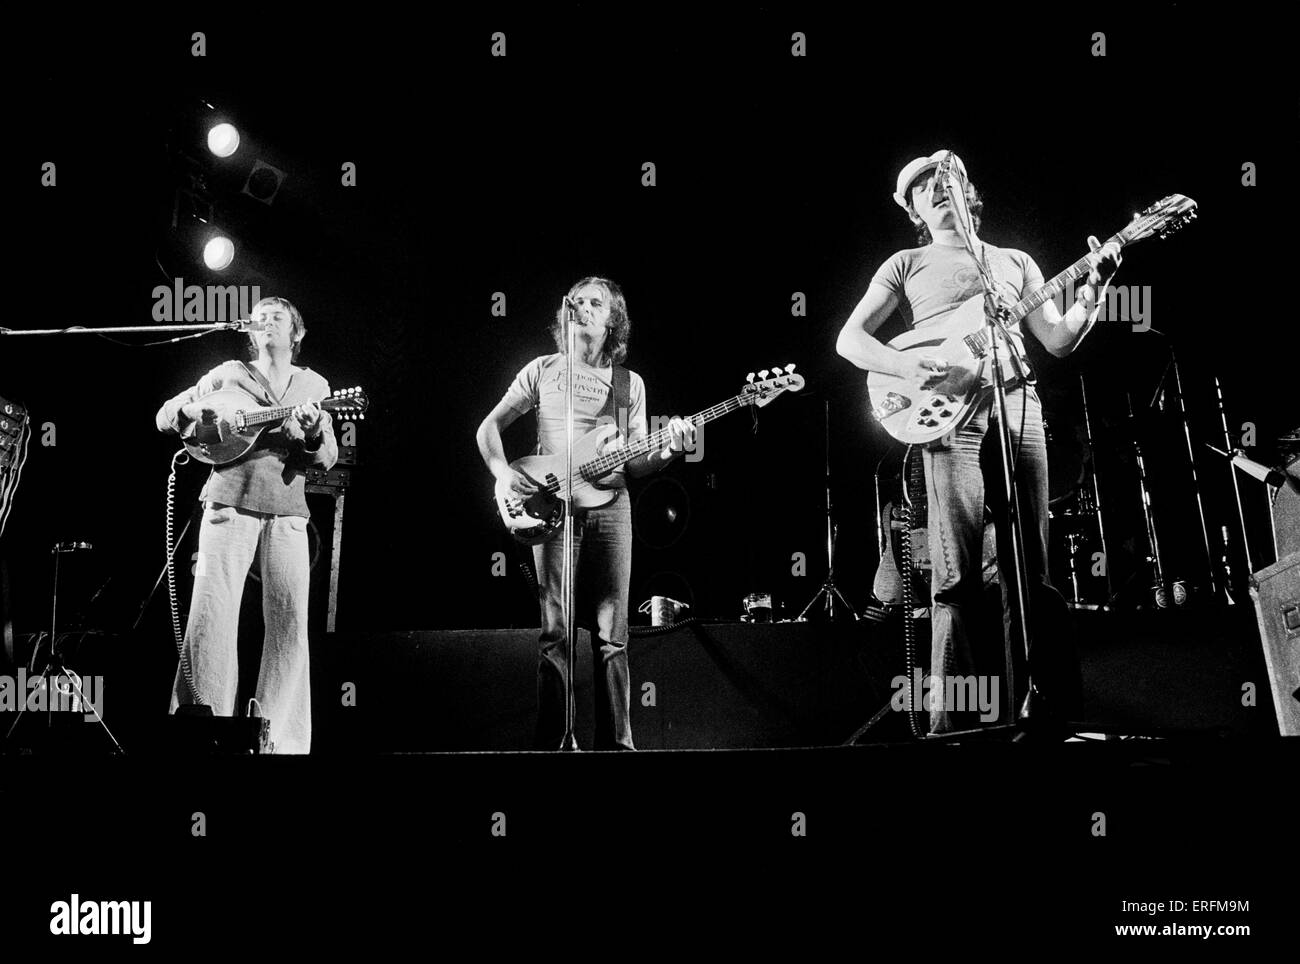 Fairport Convention - band members Dave Swarbrick, Dave Pegg & Simon Nicol performing in London, 1977. Folk - Stock Image